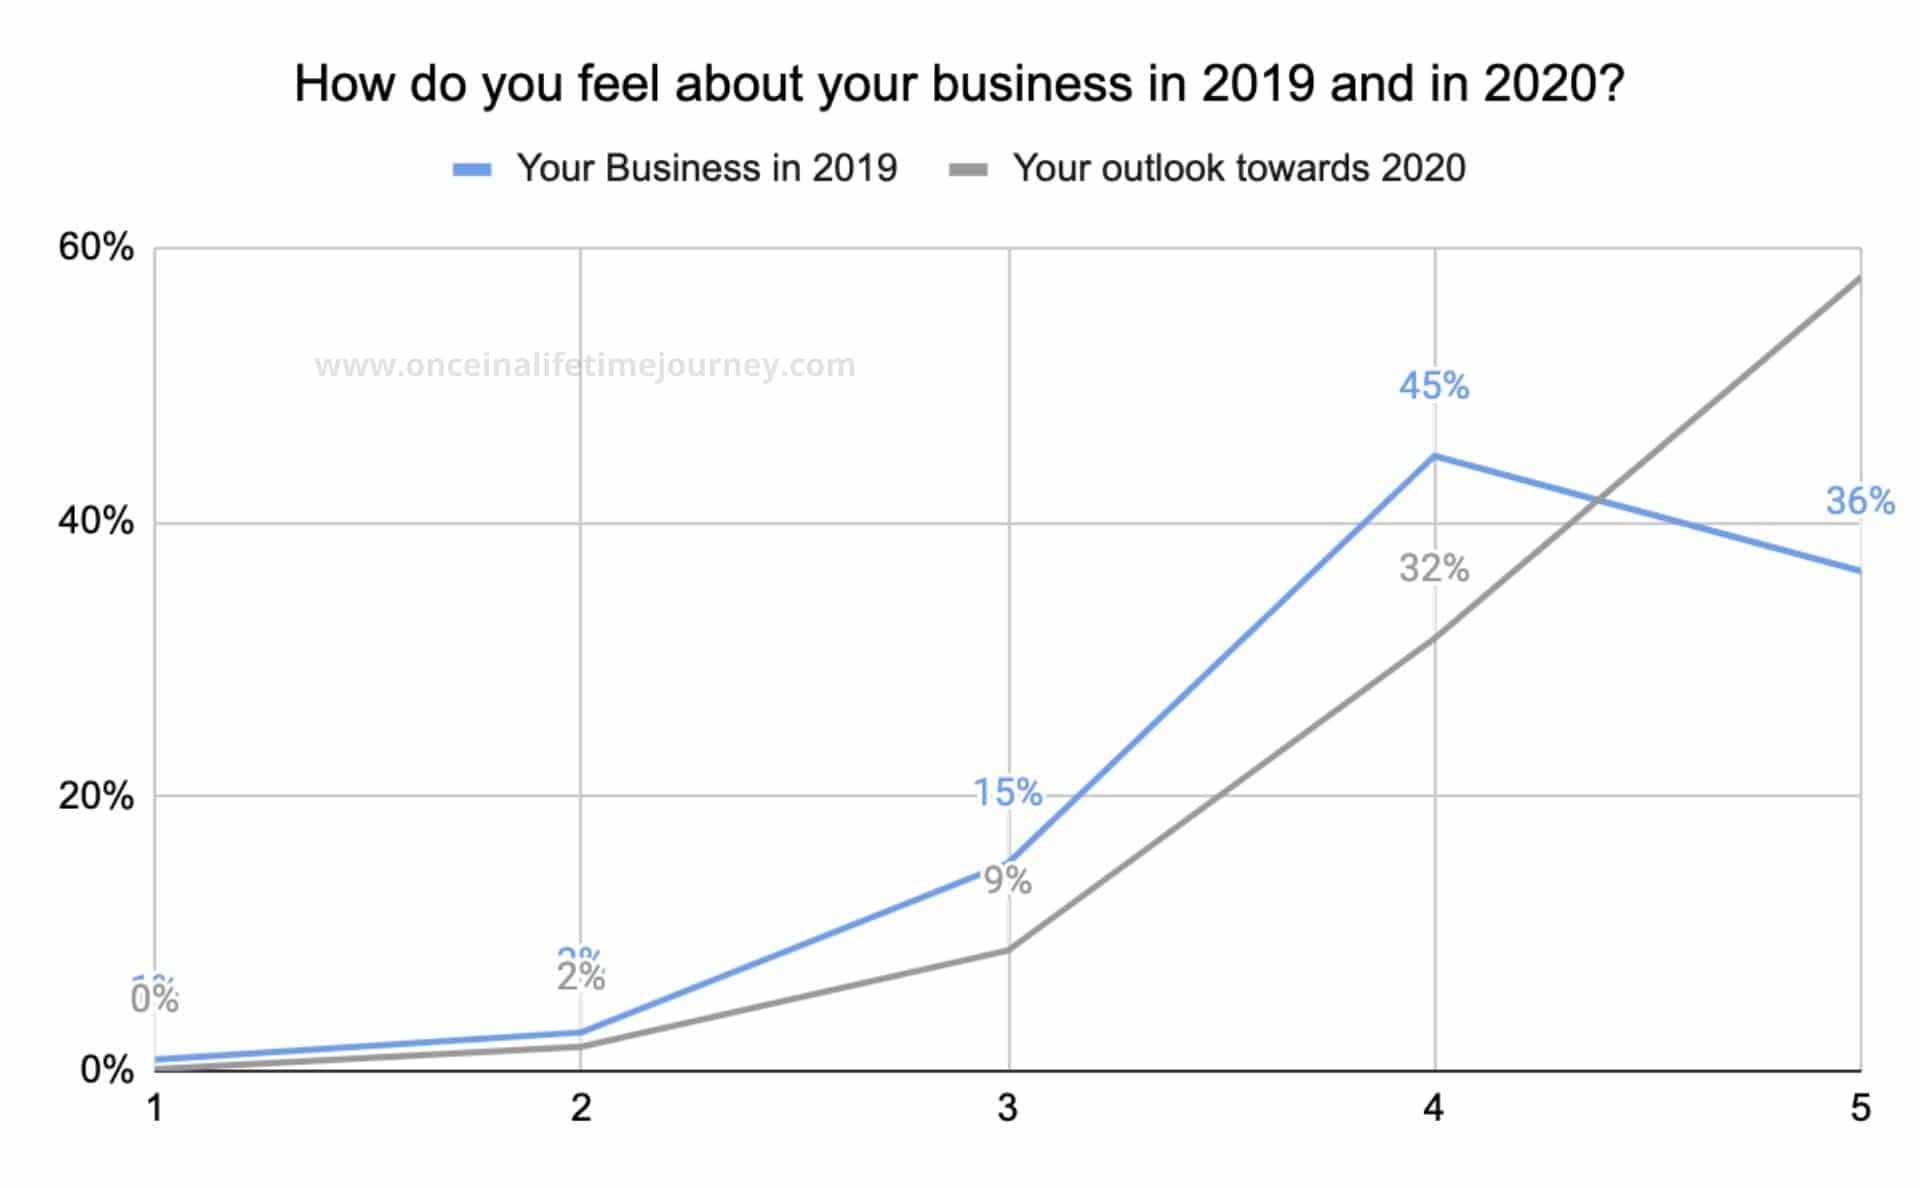 General outlook on business in 2019:2020